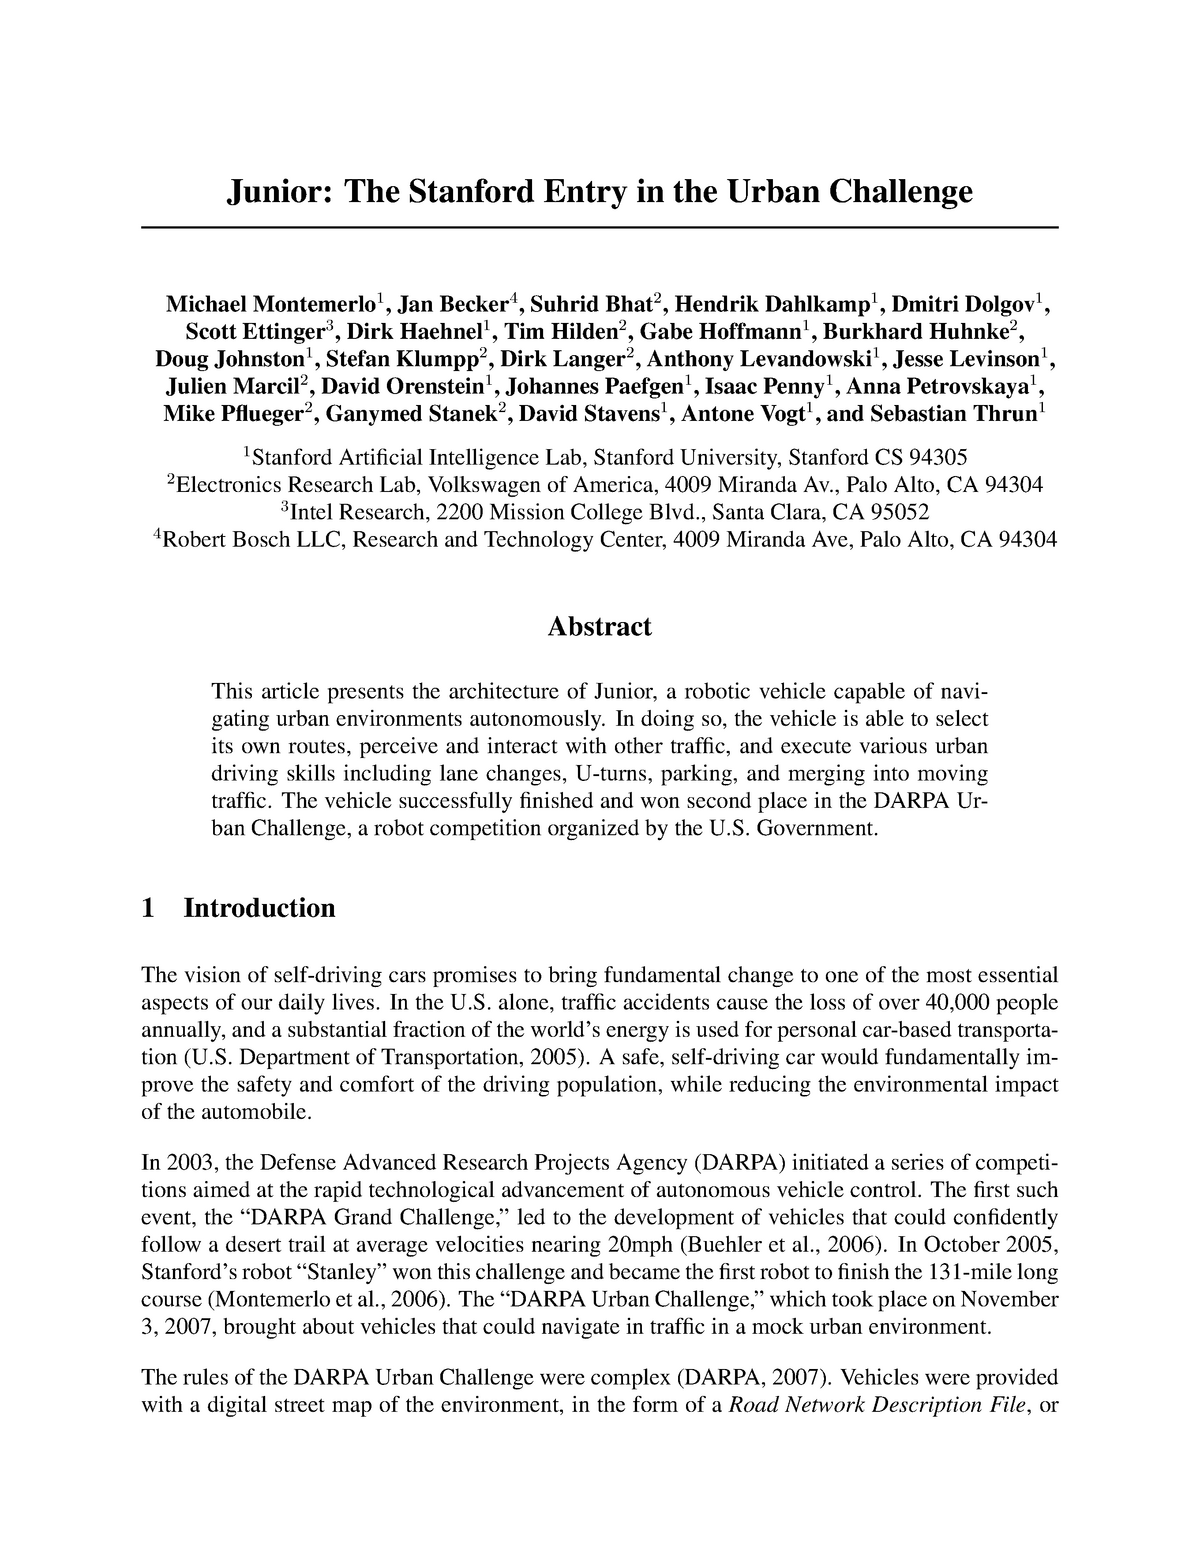 Junior the stanford entry in the urban challenge - CIS 700